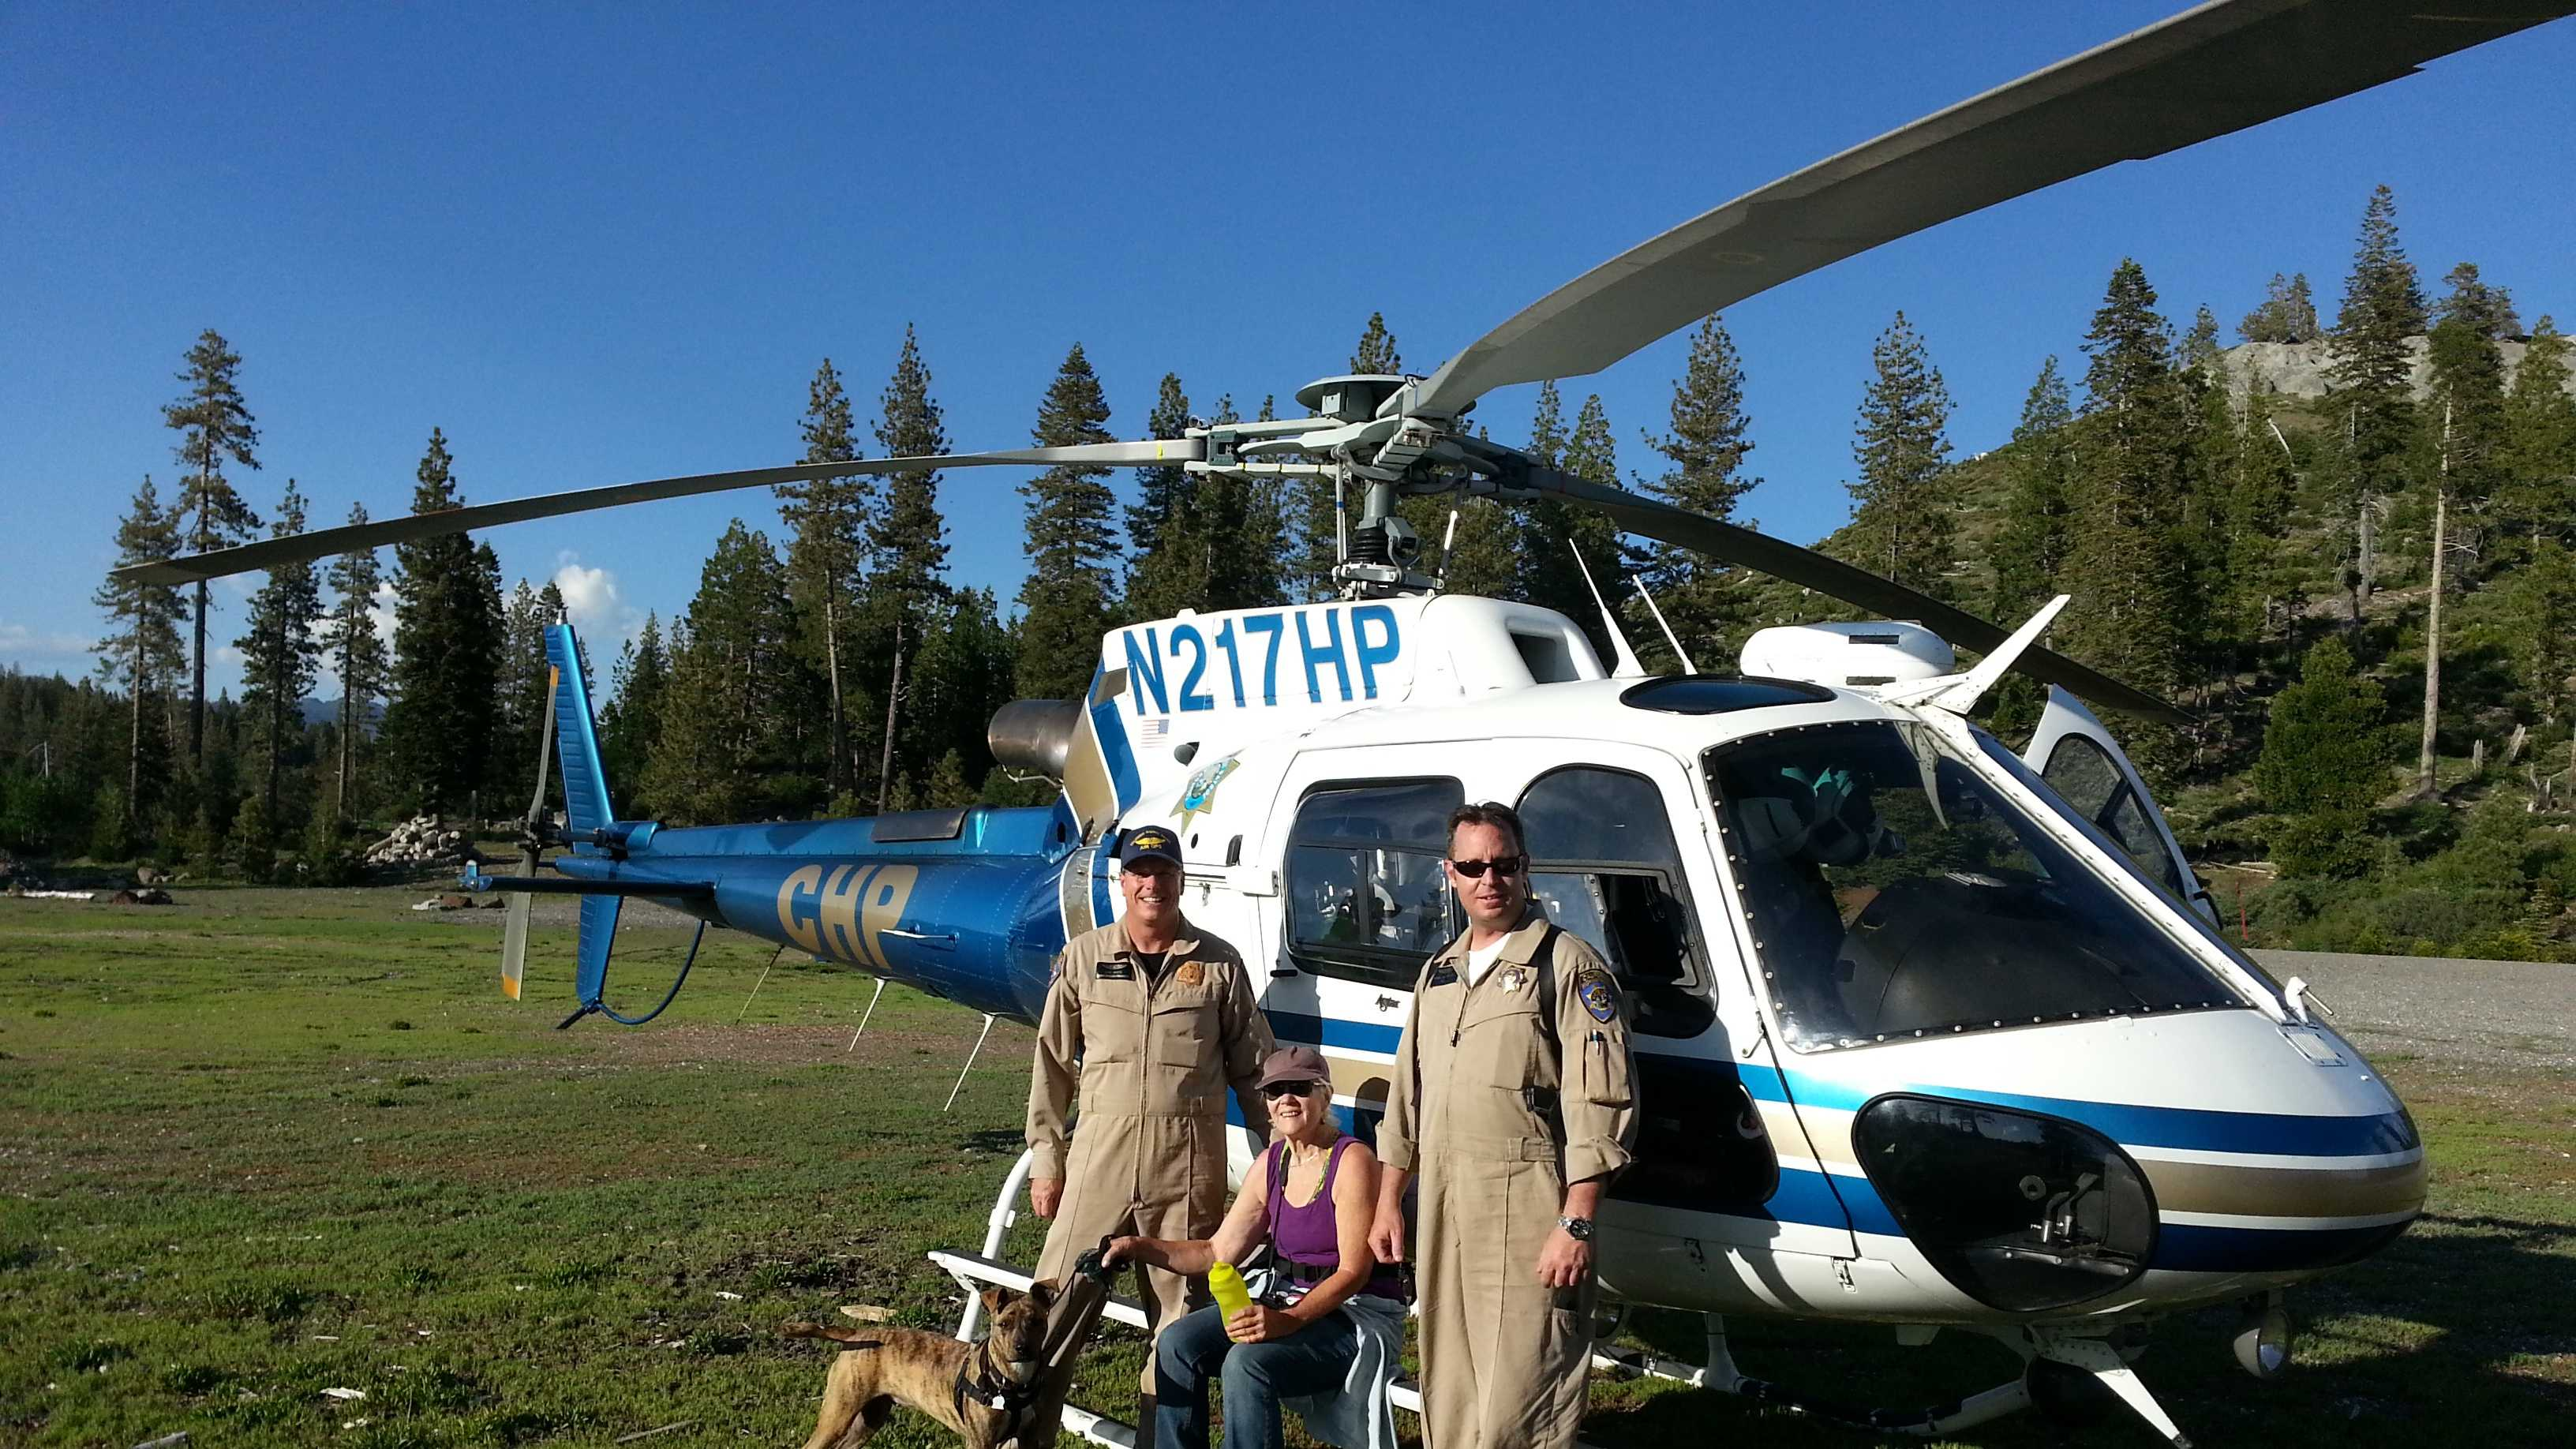 CHP helicopter rescue